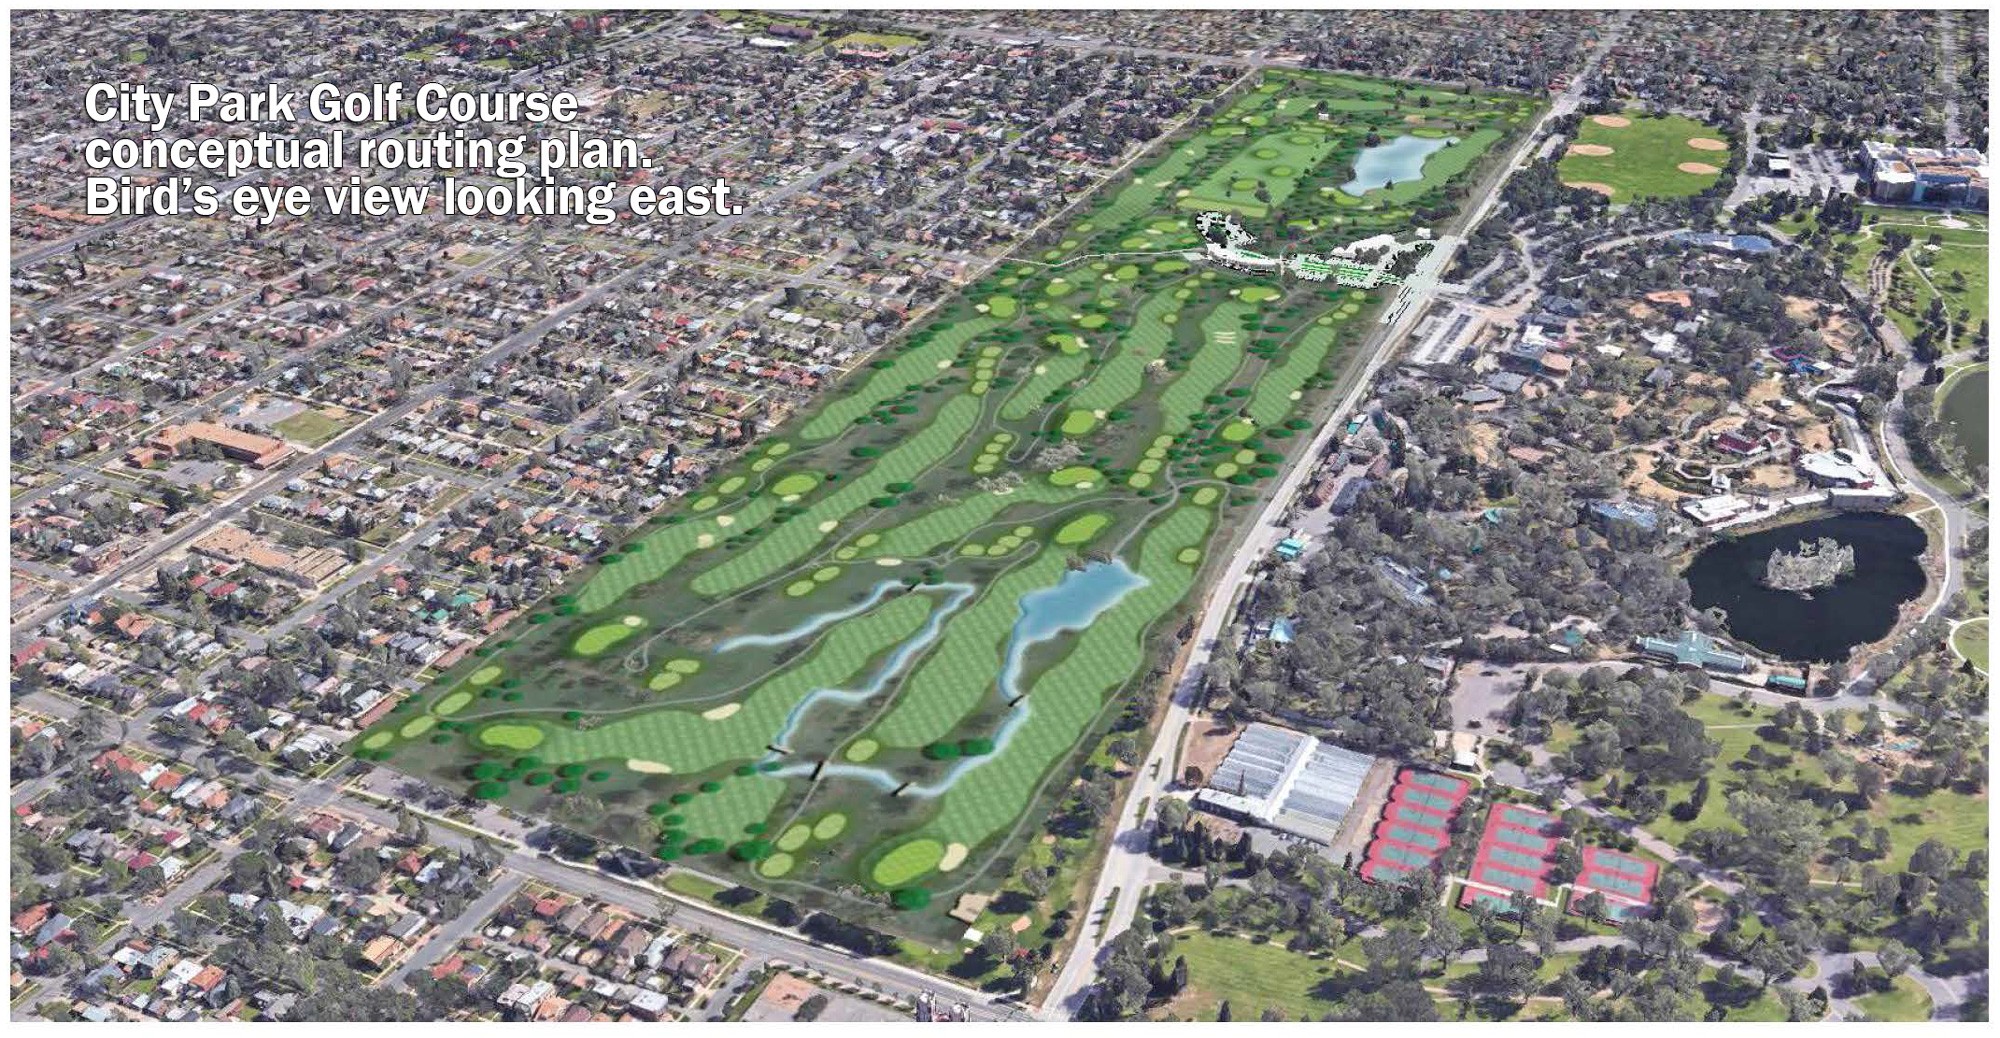 aerial view of proposed new golf course and detention areas, looking east